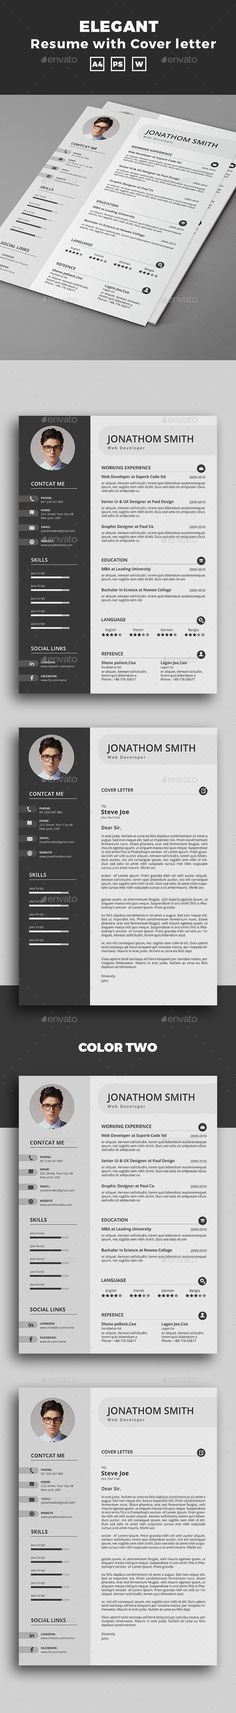 Resume — PSD Template #resume booklet #resume • Download ➝ https://graphicriver.net/item/resume/18528282?ref=pxcr: